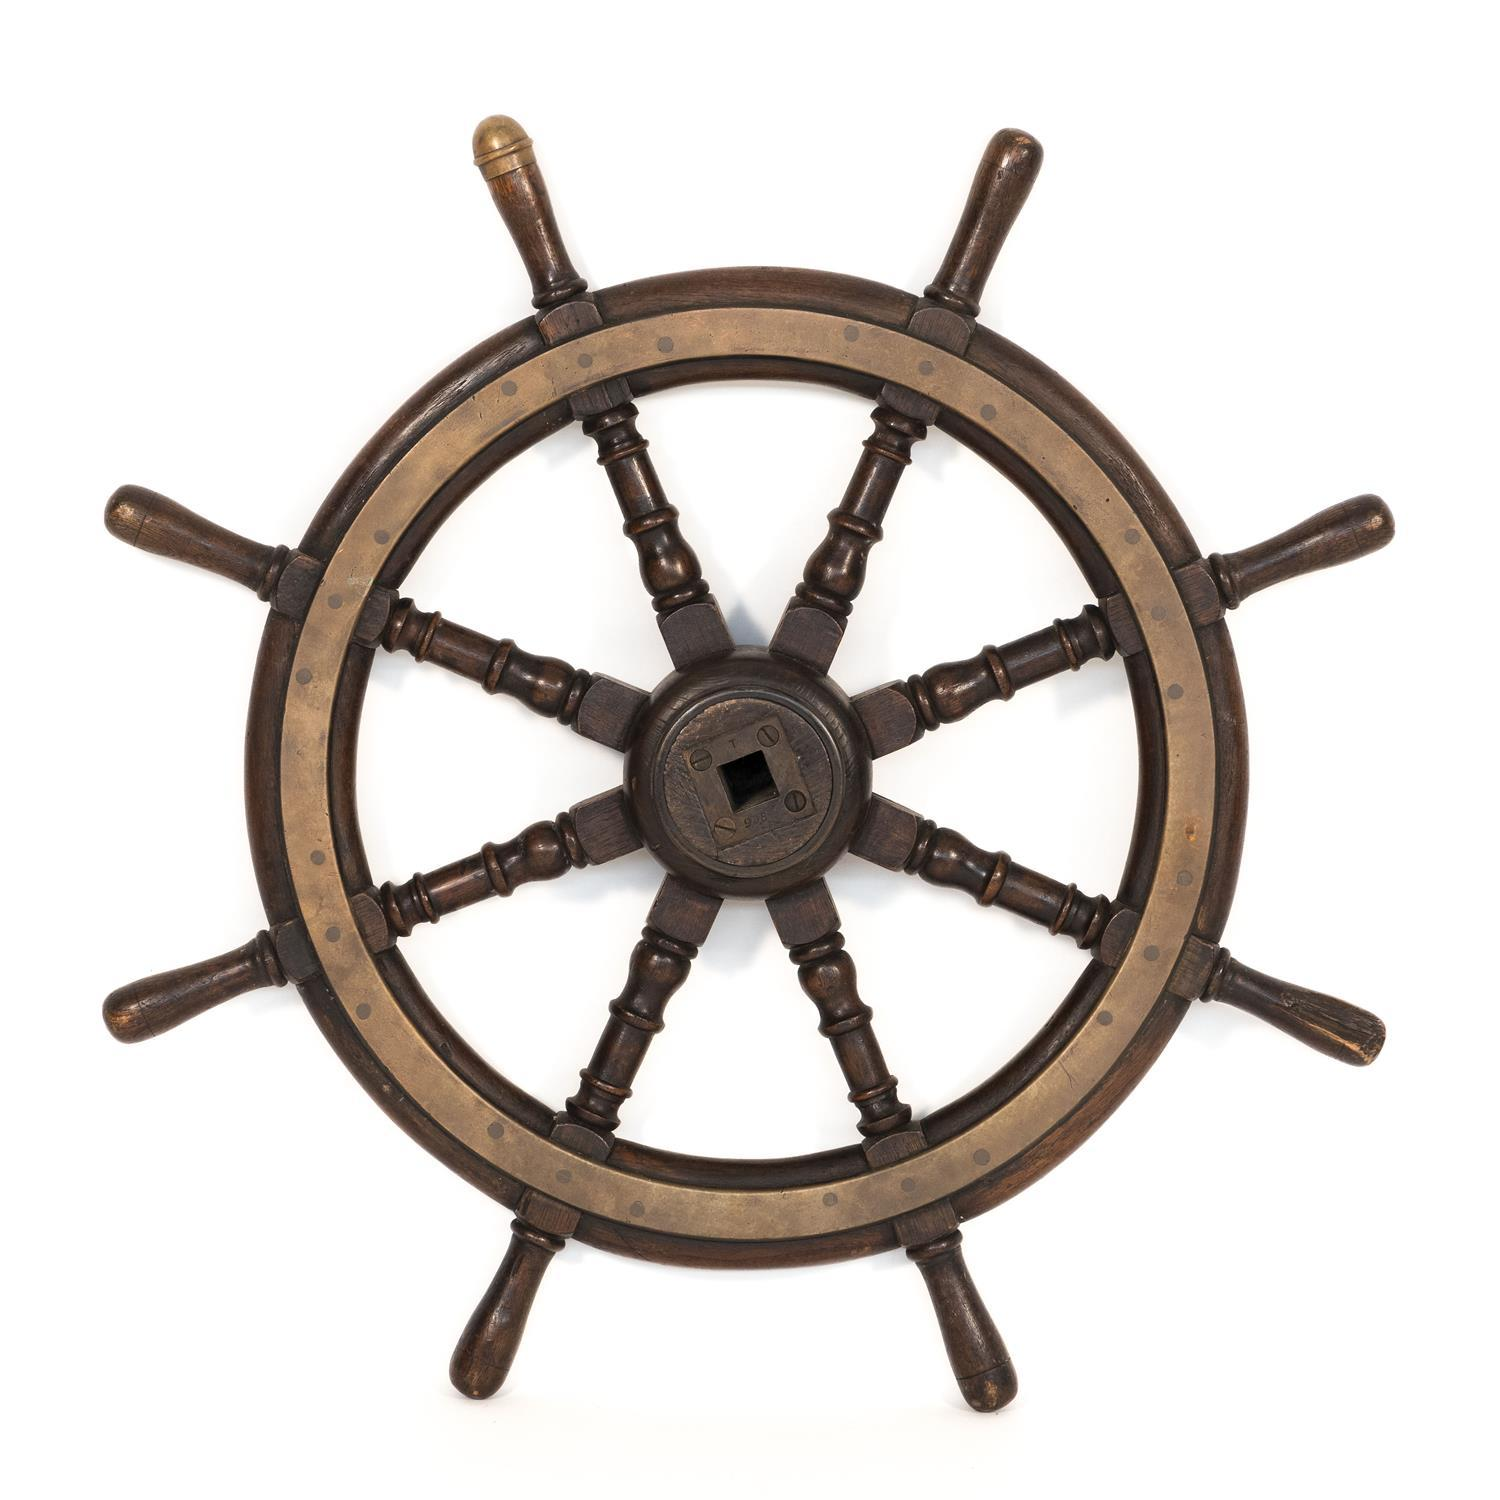 "EIGHT-SPOKE YACHT WHEEL With brass band and hub. Diameter 33""."